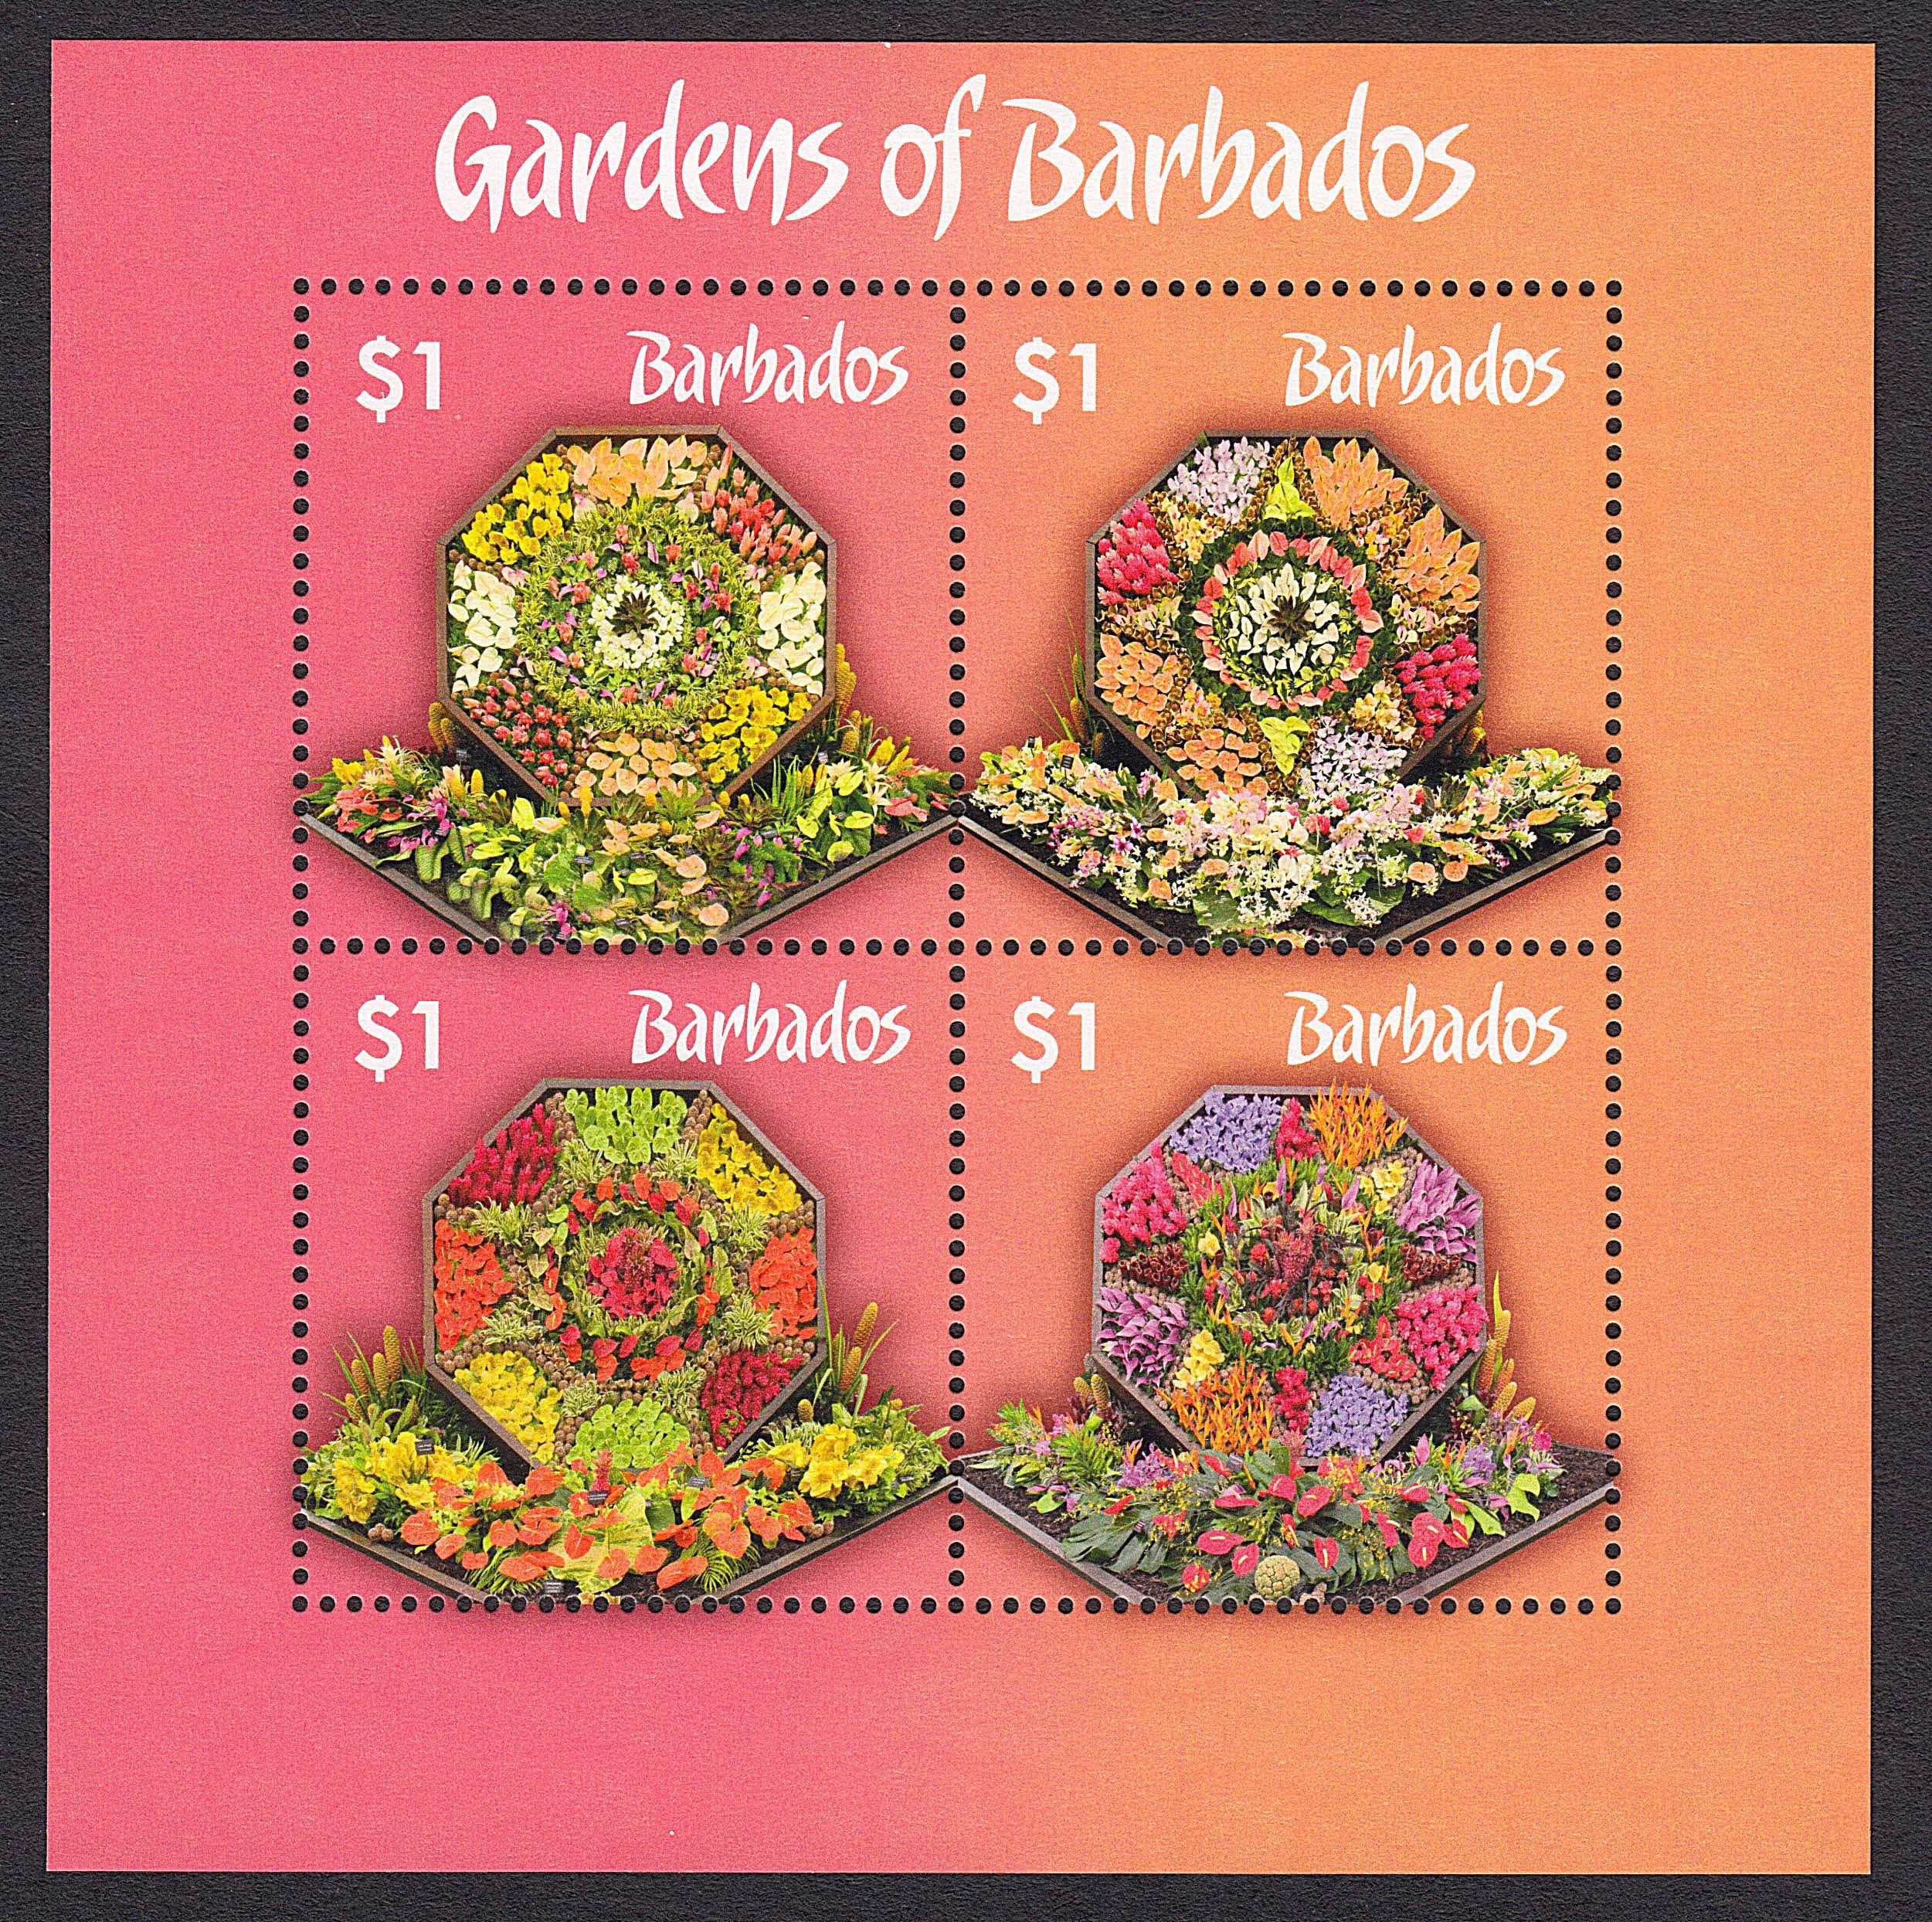 The Gardens of Barbados mini sheet